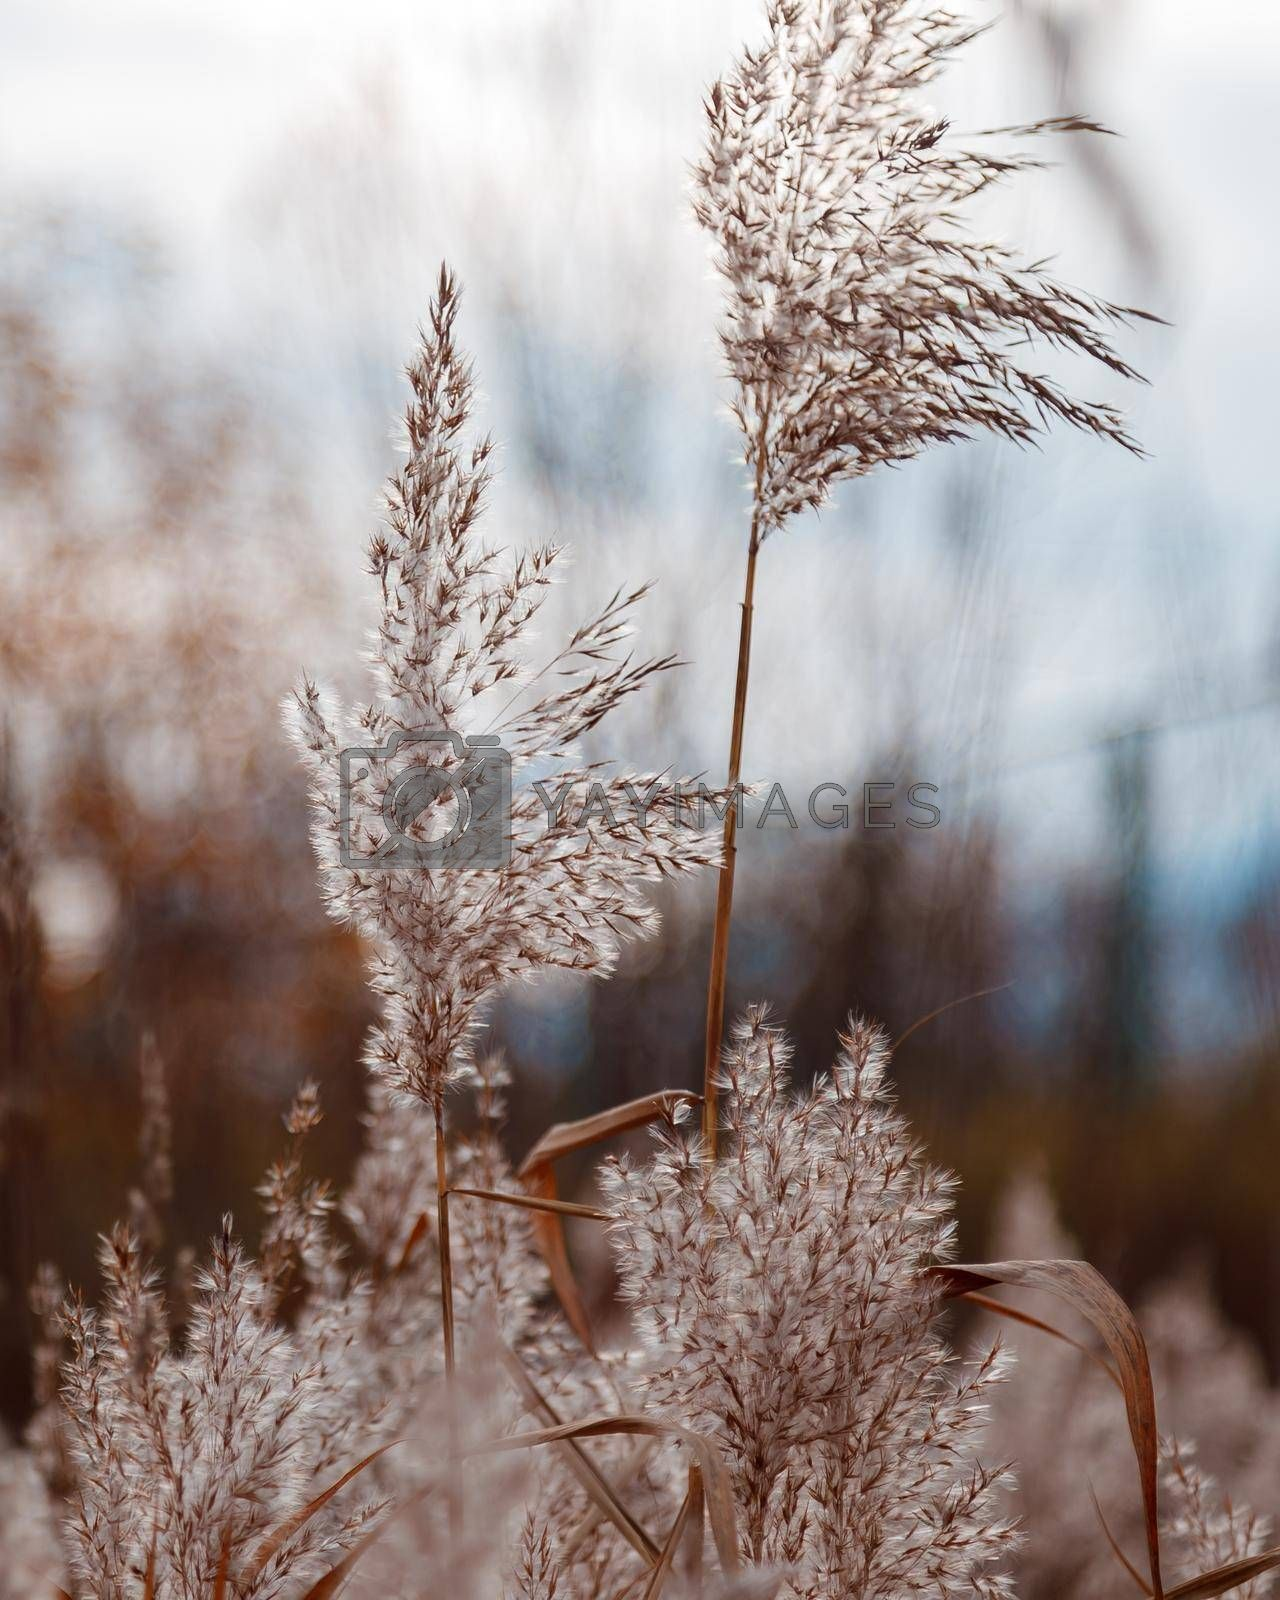 Spikelets of a fluffy plant in light pastel colors sway in the wind.